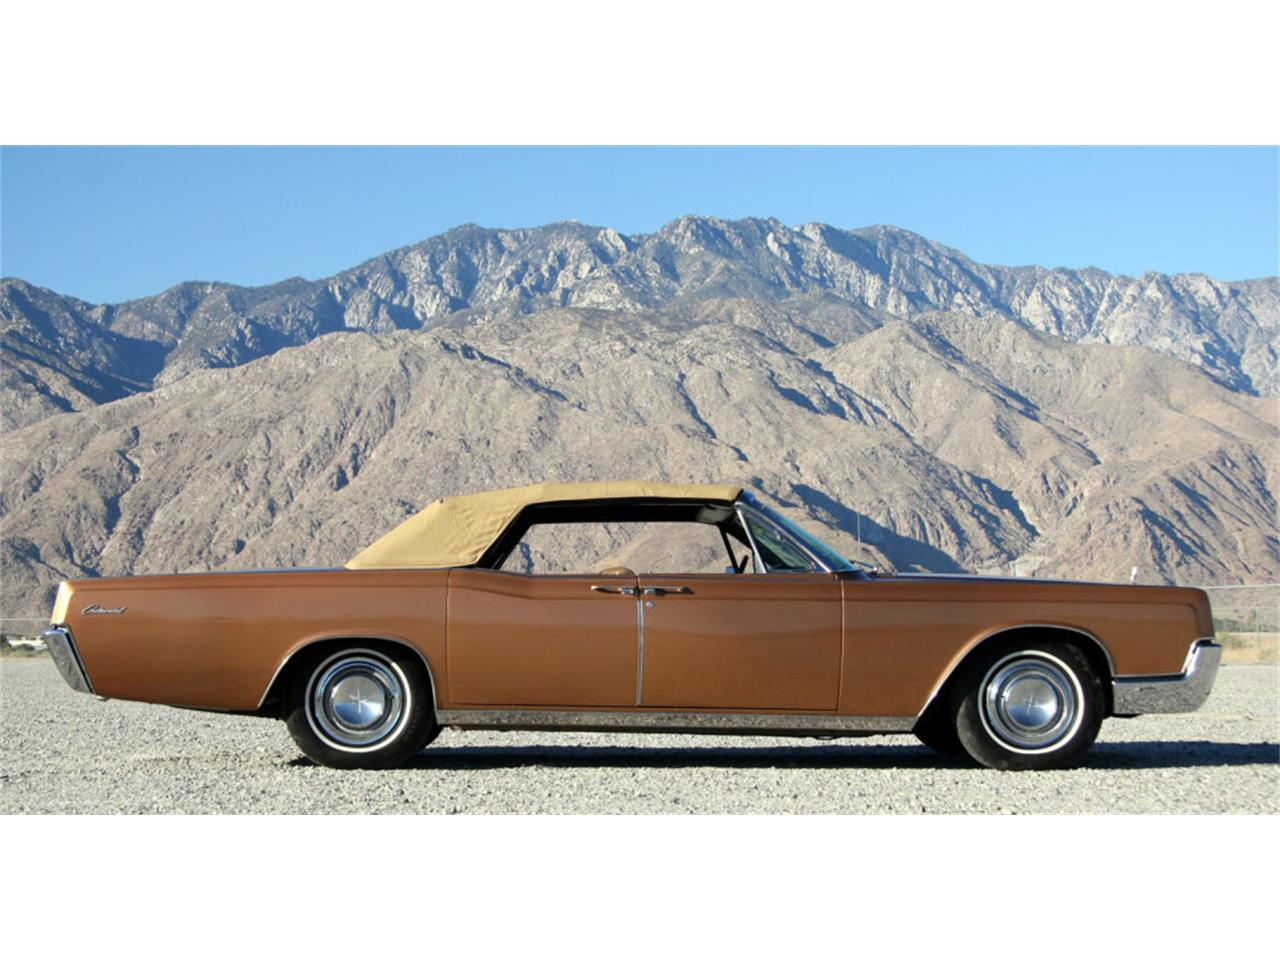 Large Picture of '67 Lincoln Continental located in SAN DIEGO CA - California Offered by Precious Metals - PUYH